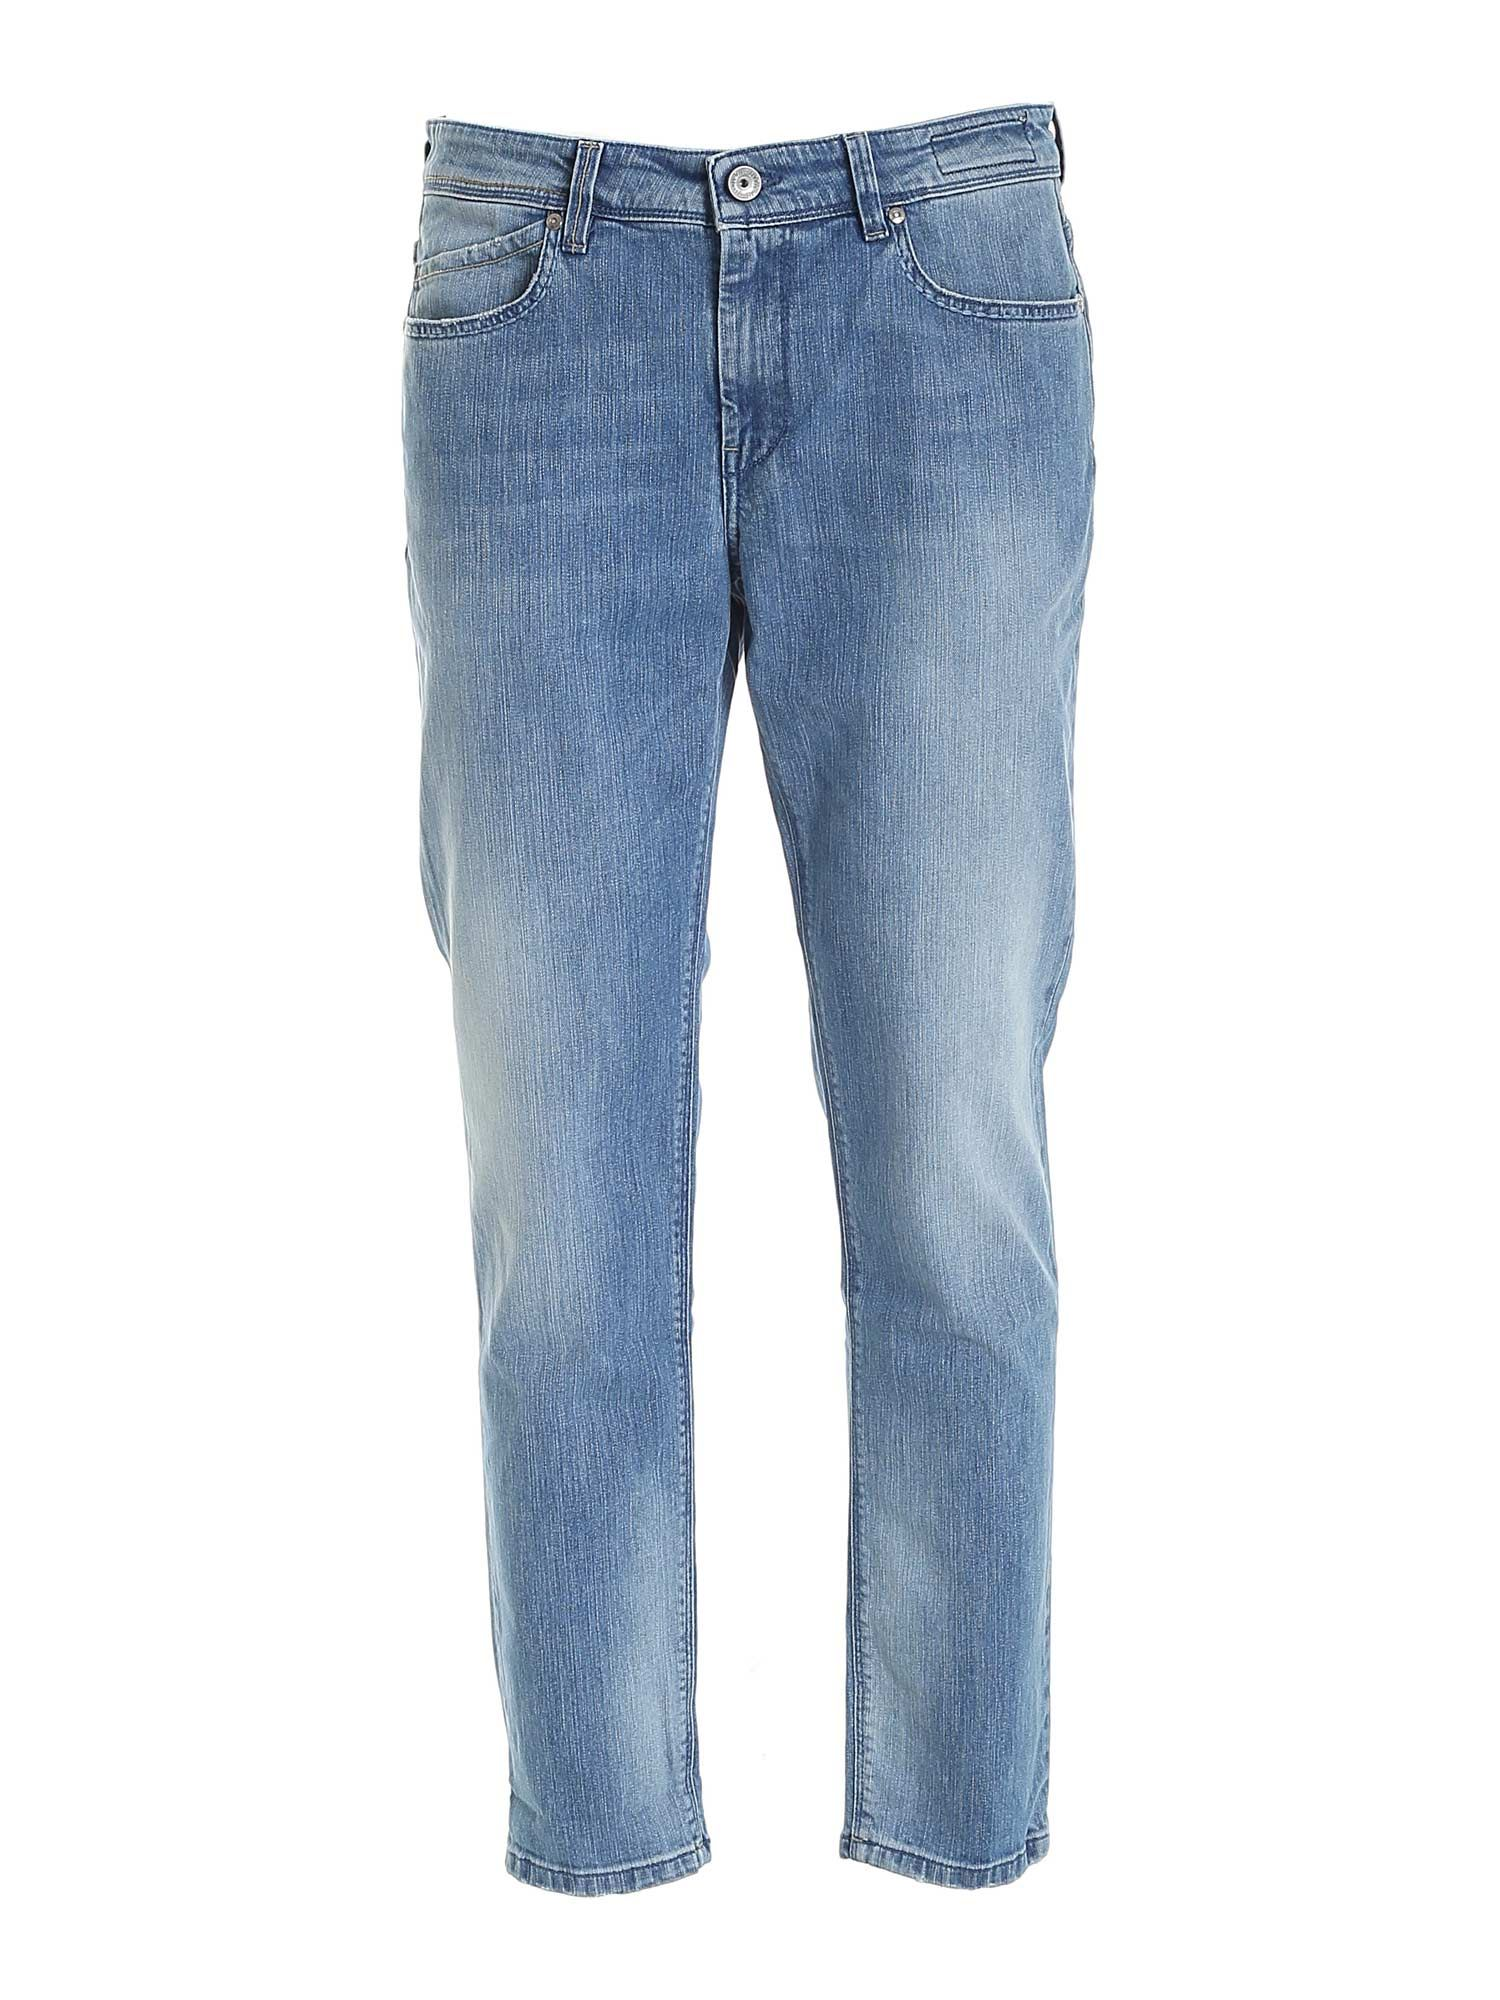 Re-Hash 5 POCKET JEANS IN LIGHT BLUE